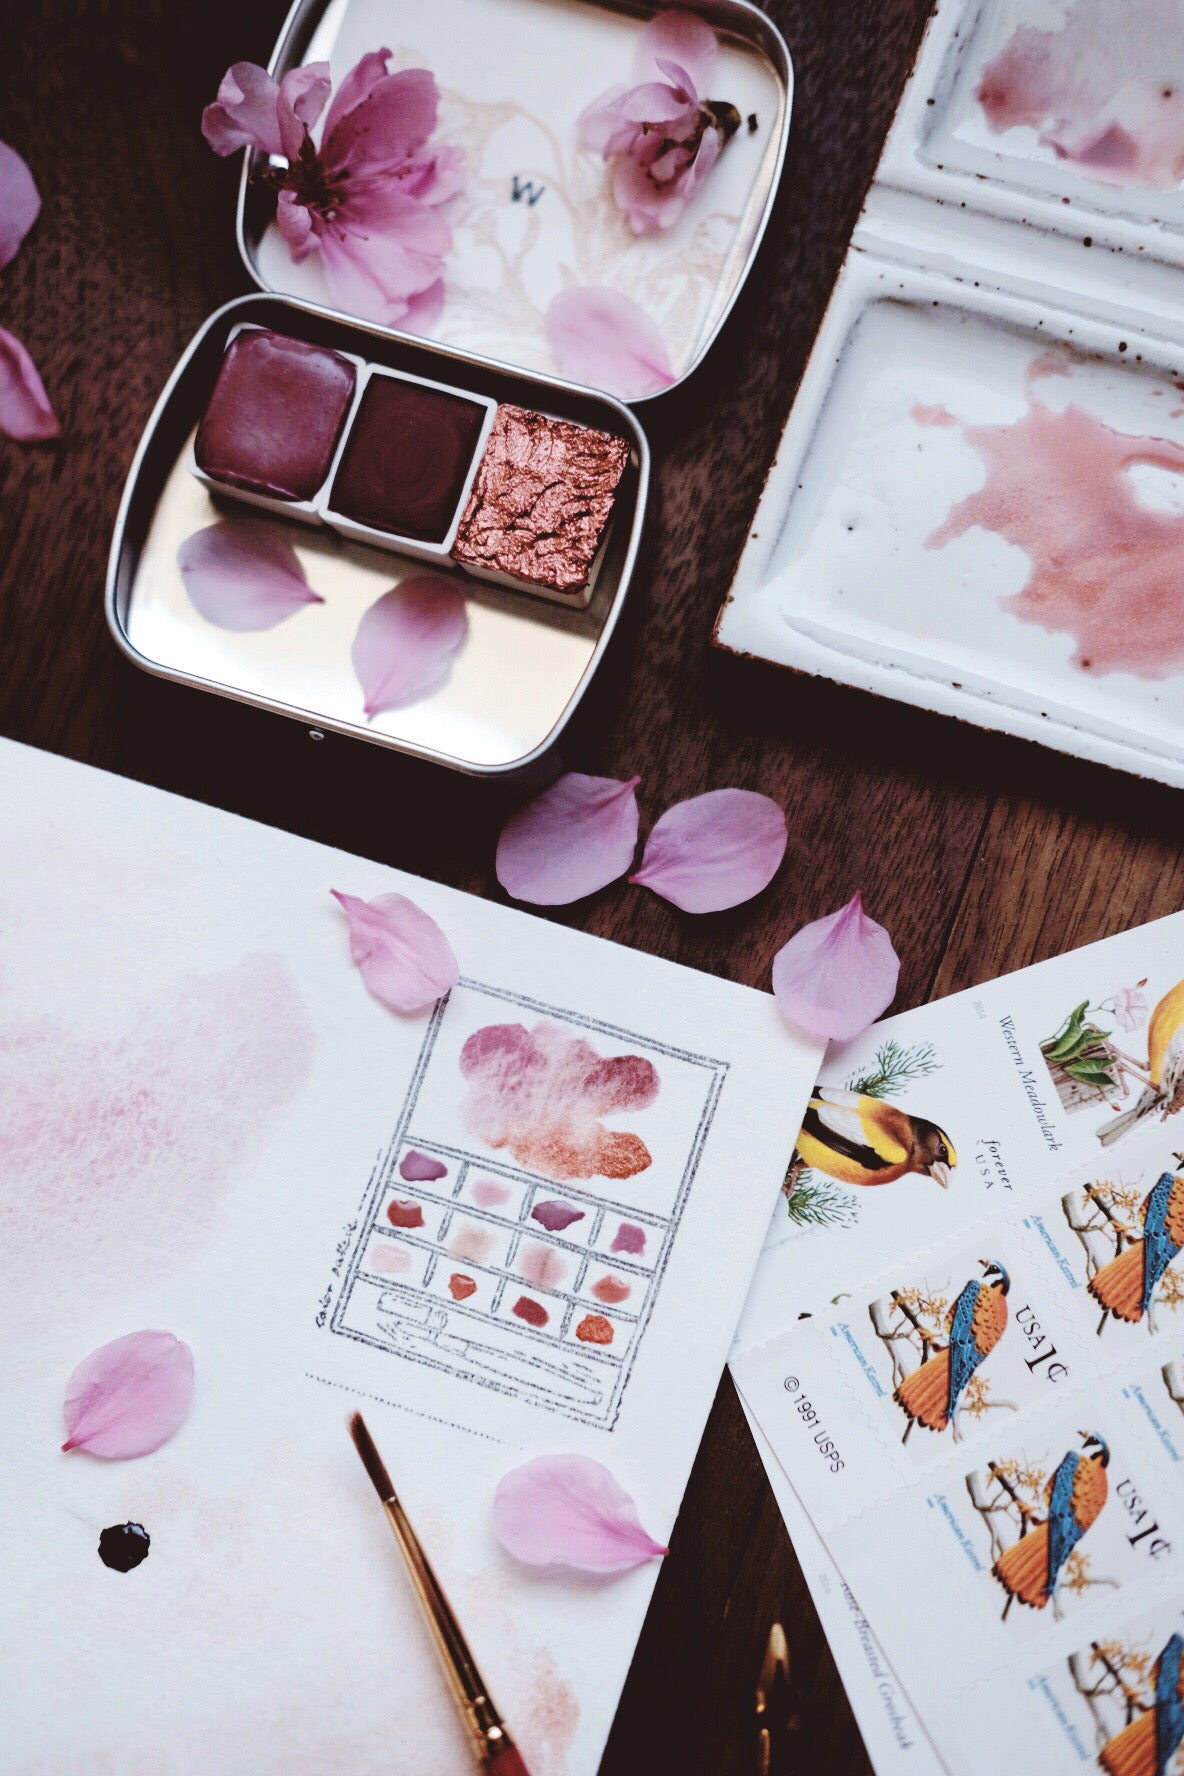 Sakura Petal - Limited edition Gemstone Mineral watercolor palette